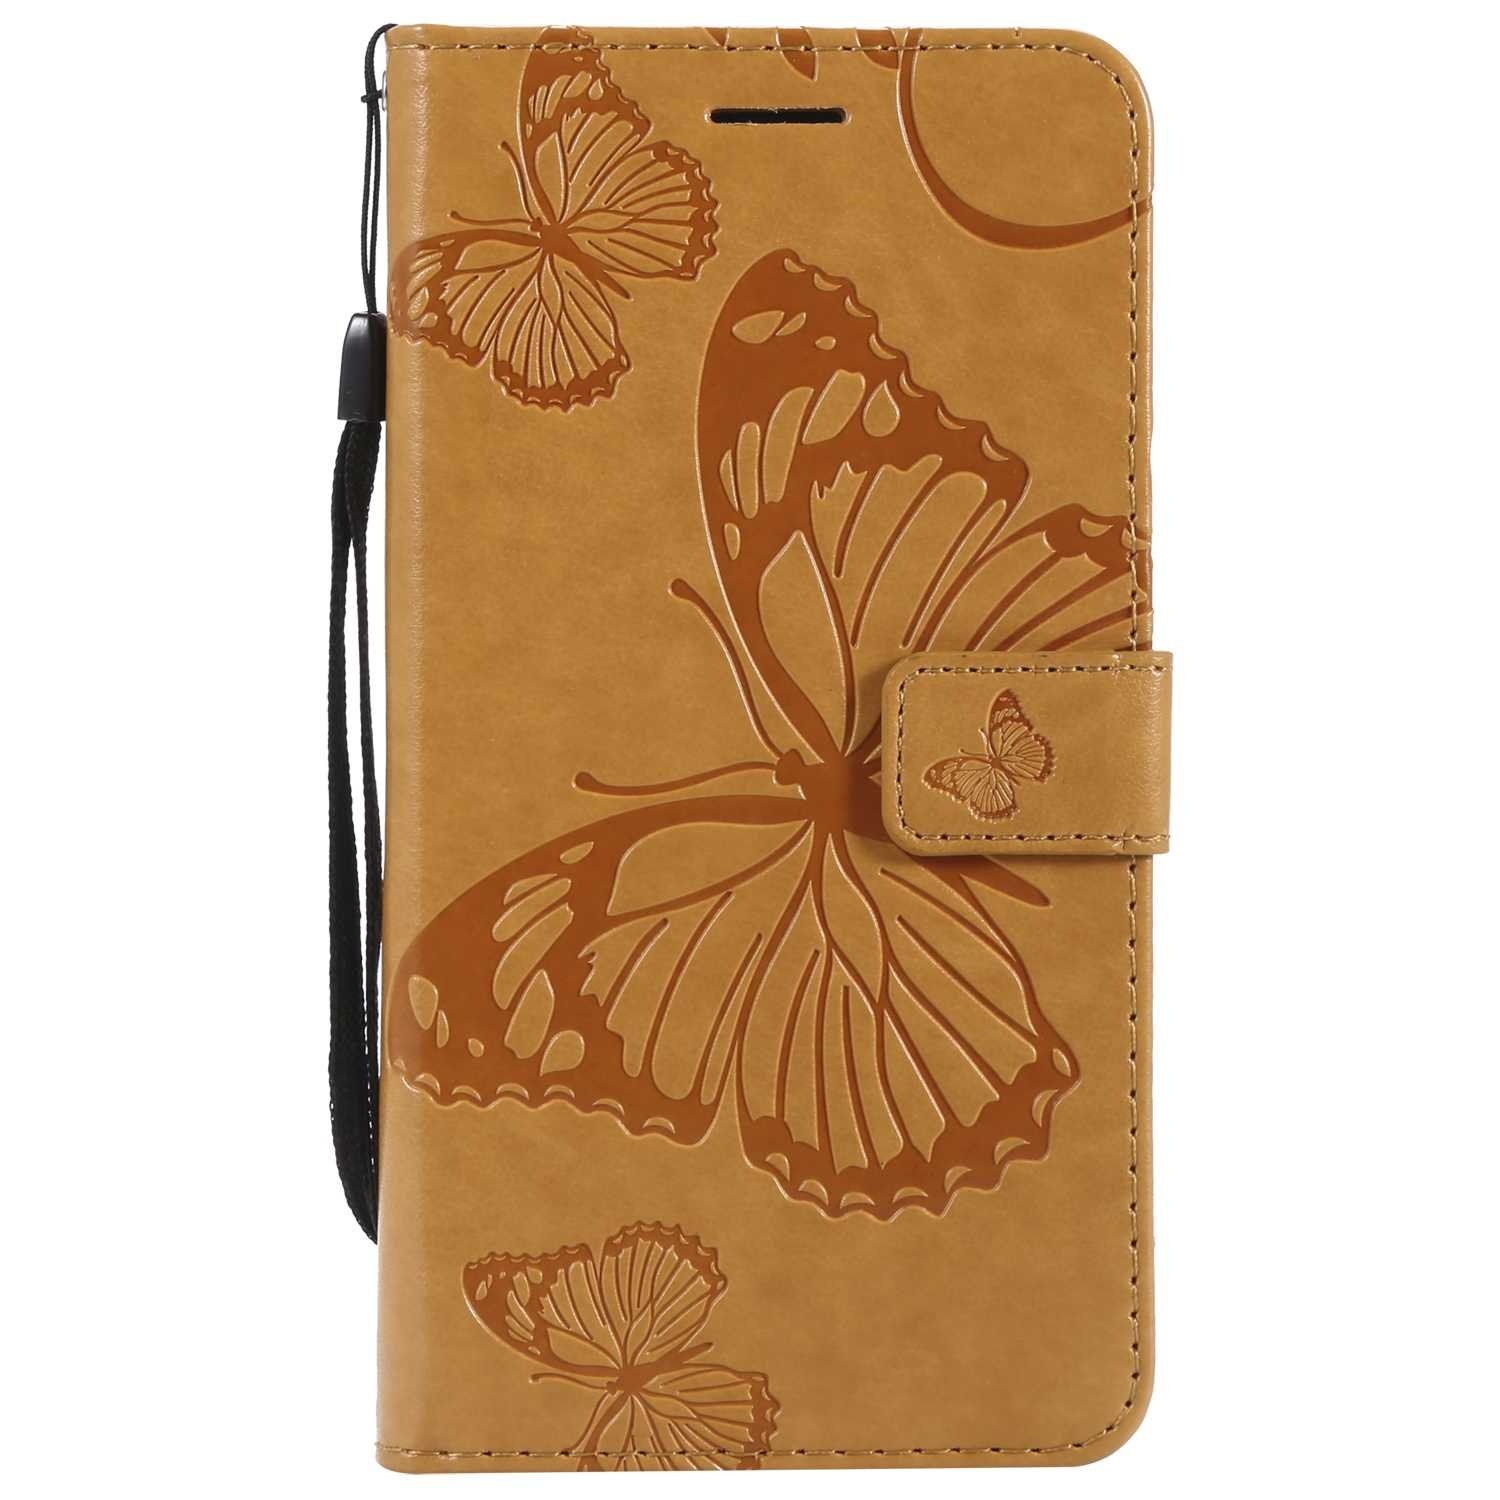 CUSKING Case for Samsung Galaxy J7 2016, Leather Flip Cover Magnetic Wallet Case with Butterfly Embossed Design, Case with Card Holders and Kickstand - Yellow